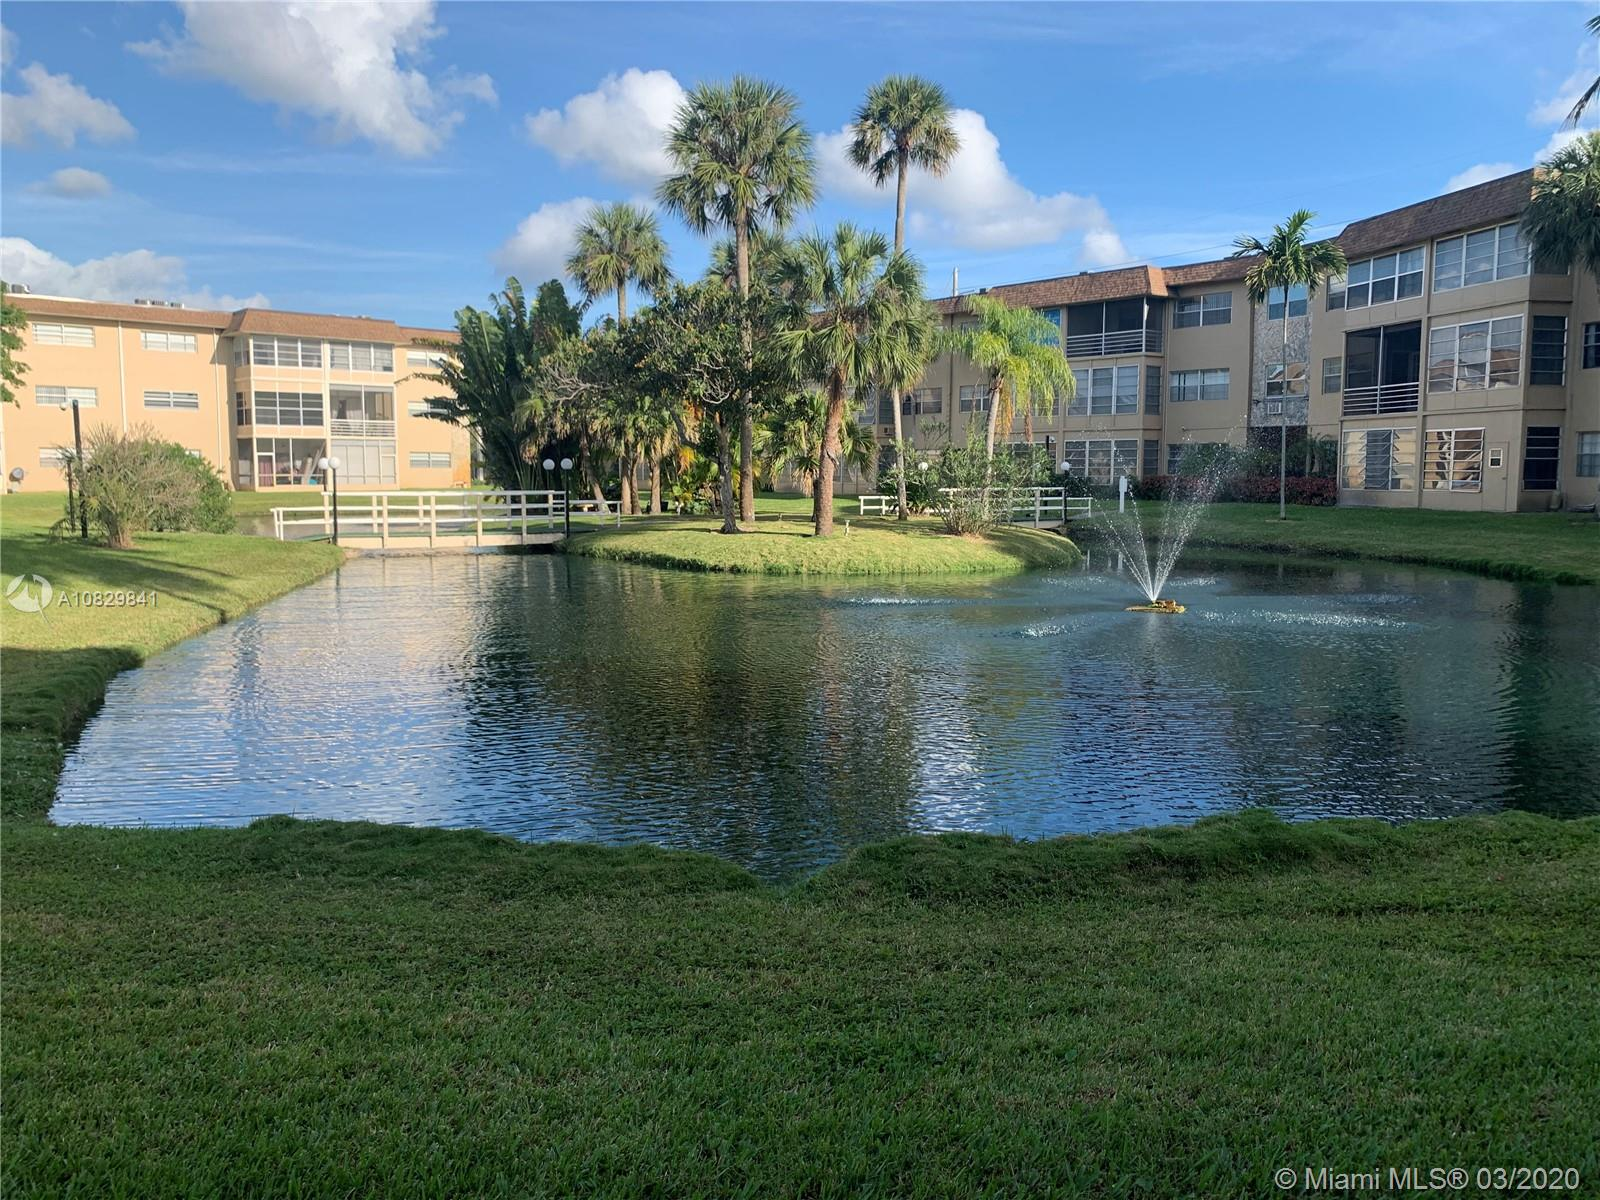 Beautiful condominium on the first floor with 2 bedrooms and 2 full bathrooms. It is located in Camellia Gardens (55+ community). The kitchen overlooks the dining/living room and screened porch. As the sun rises, enjoy a gorgeous and peaceful view from your master bedroom and/or porch. Nothing less than quite the sight to see, we encourage you to come on by and see for yourself. The condominium offers amenities: swimming pools, exercise room, laundry facilities and much more. Close to Wal-Mart, CVS, Walgreens, Publix, medical & commercial centers, restaurants, and parks.